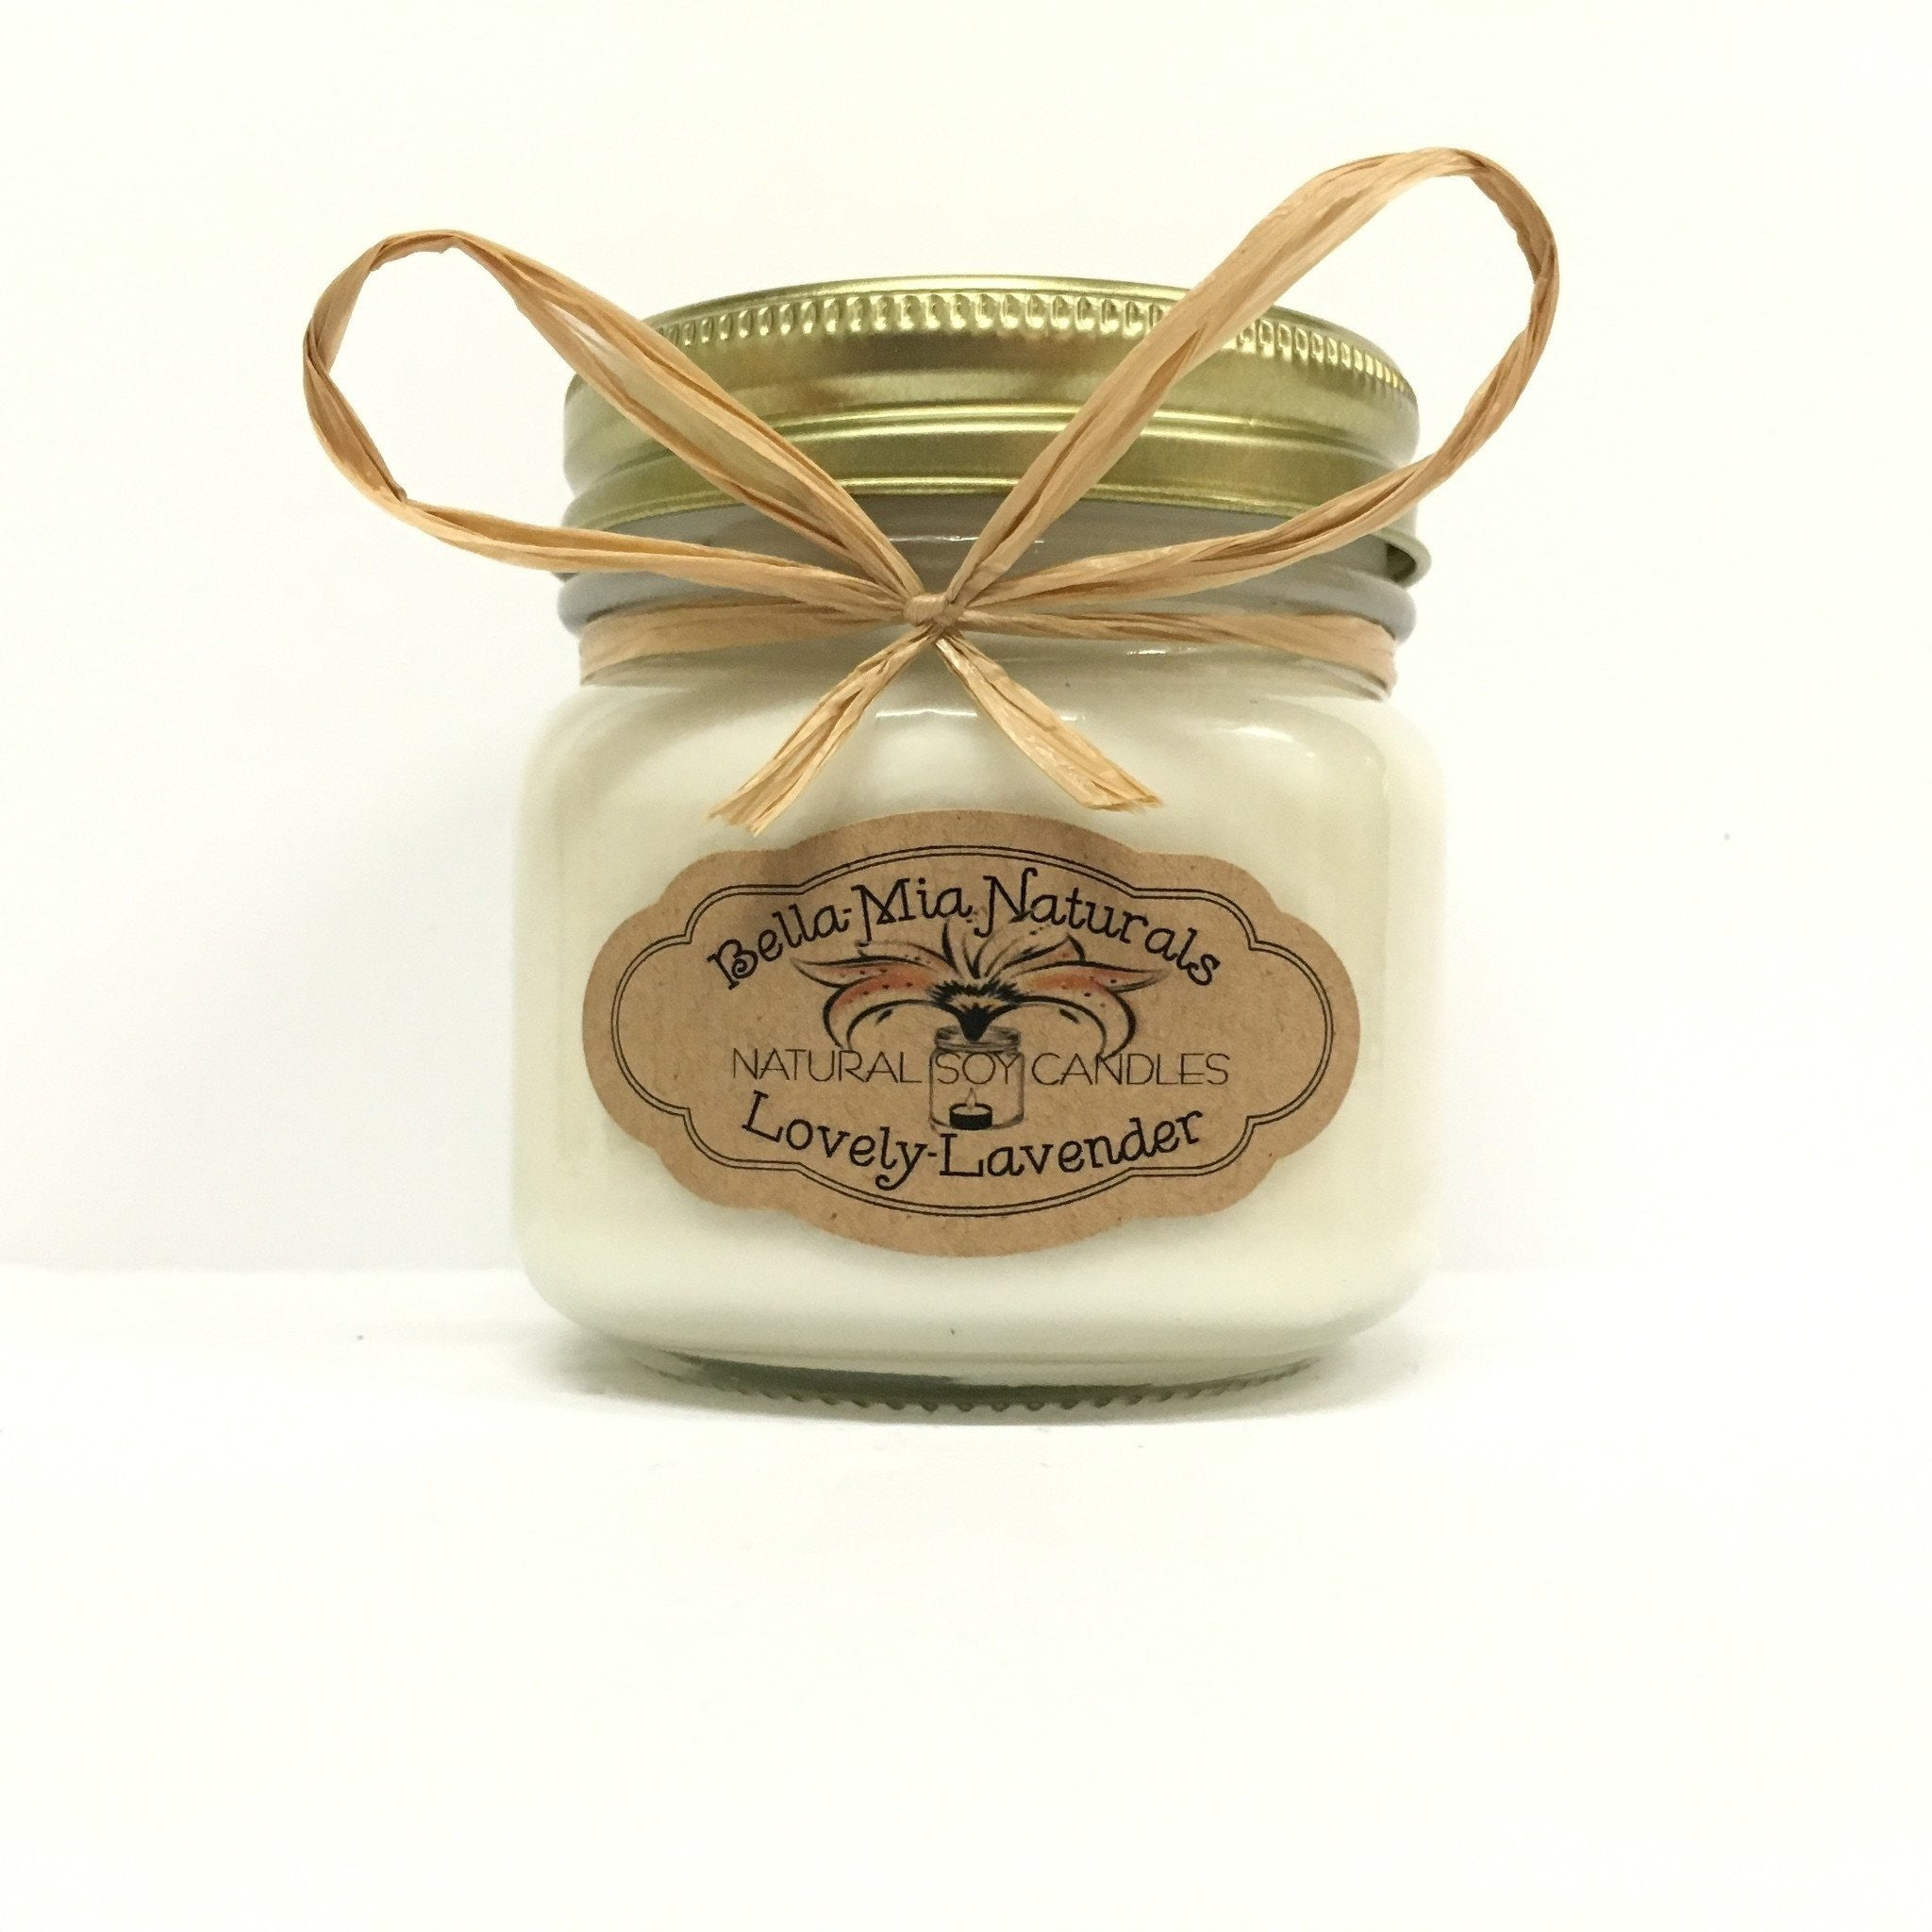 Lovely-Lavender Natural Hand Poured Soy Candles - Half-Pint - Bella-Mia Naturals All Natural Soy Candles & Lip Balms - 4